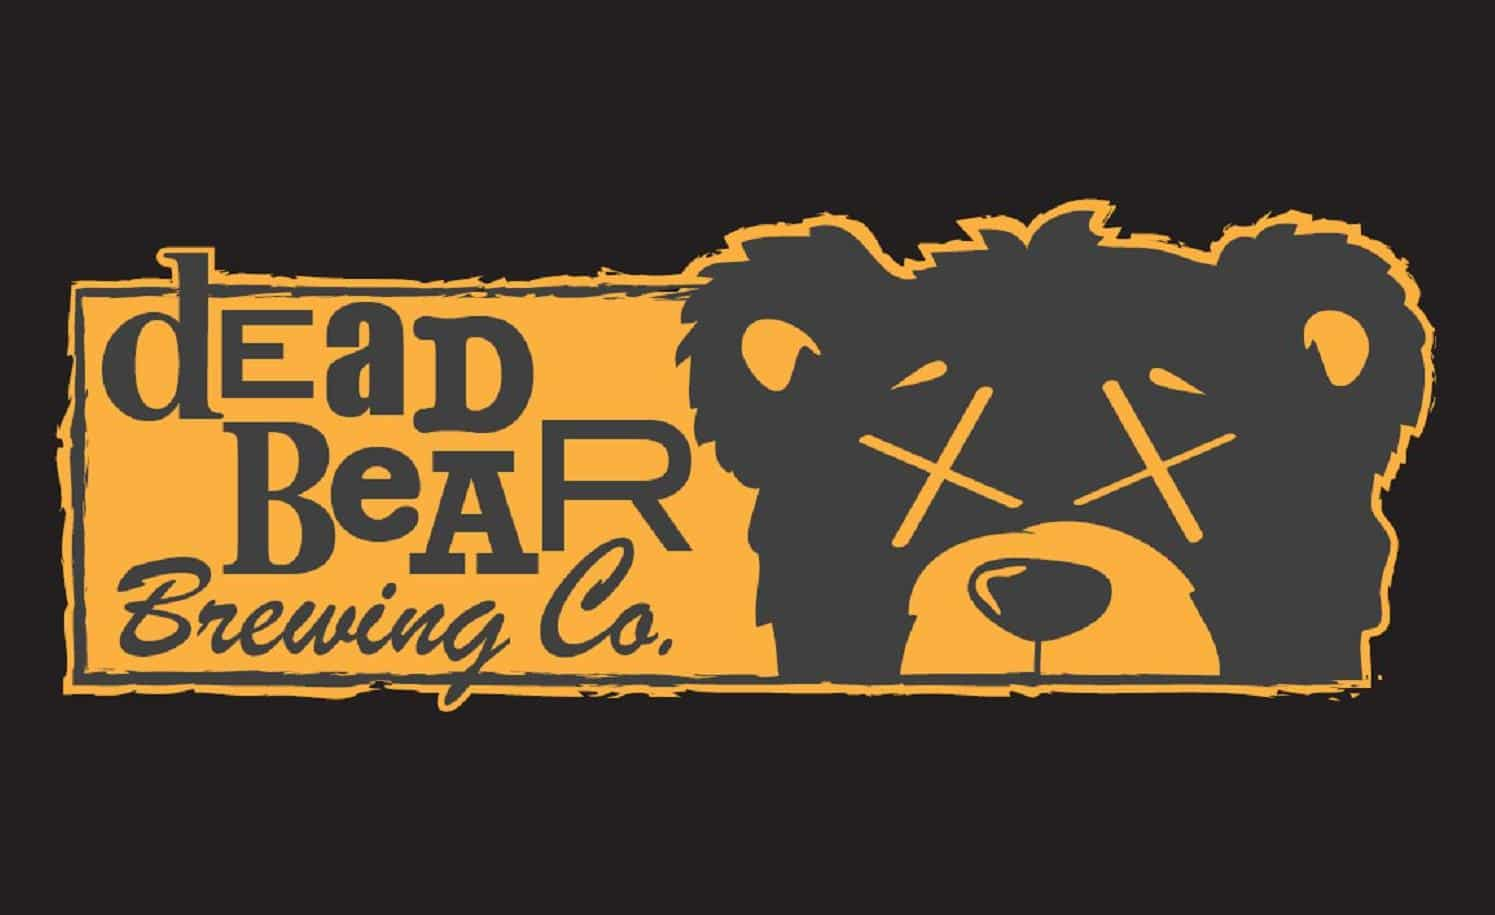 Dead Bear Brewing Co.